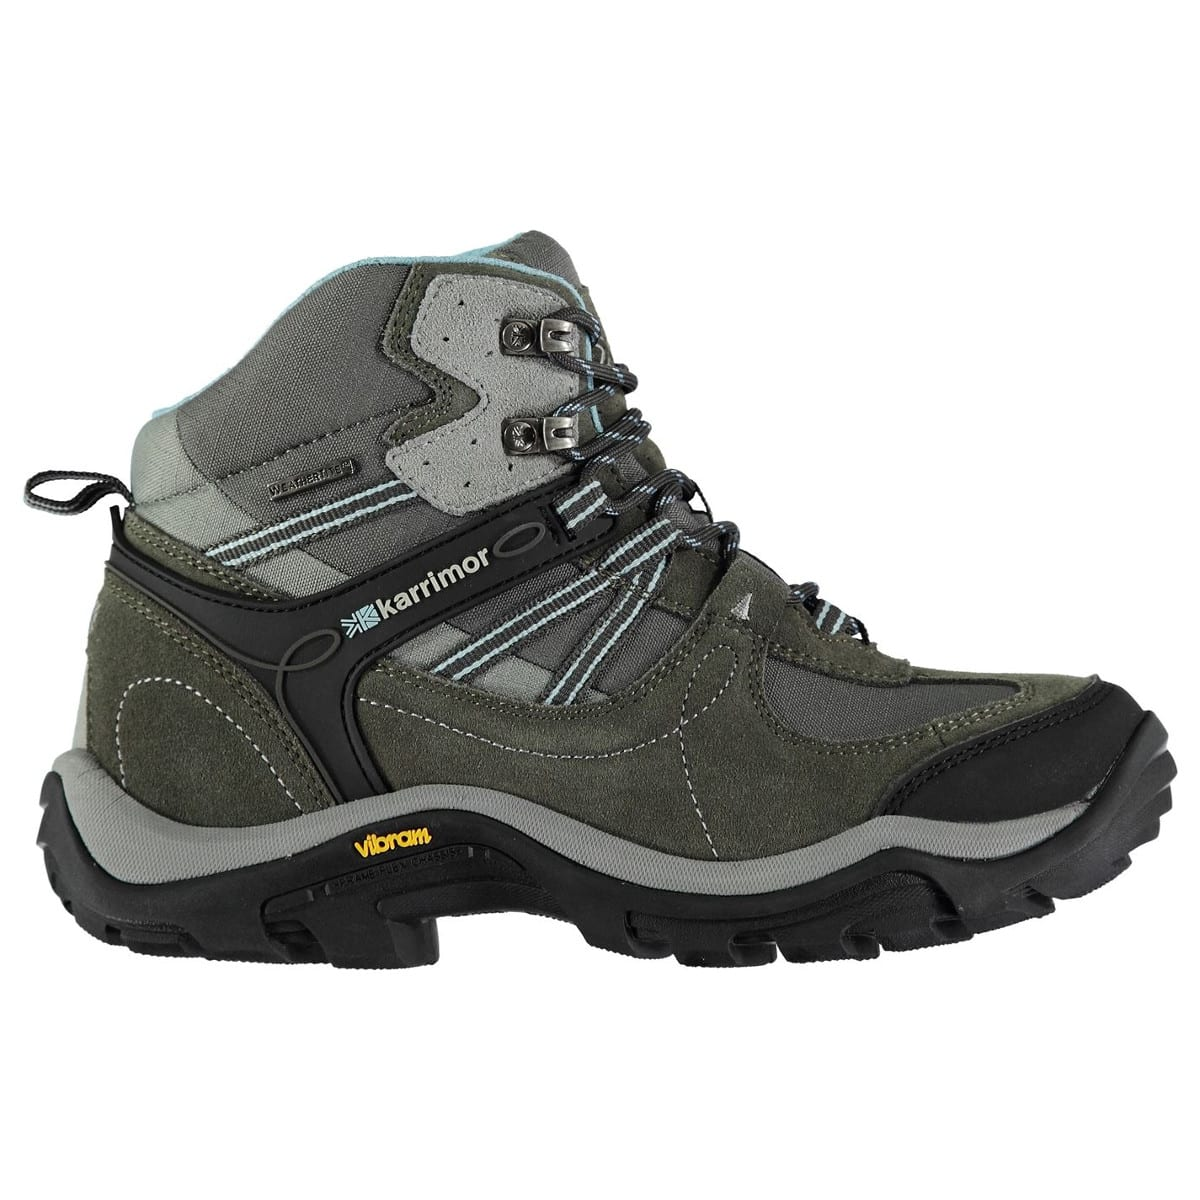 10. Karrimor Waterproof